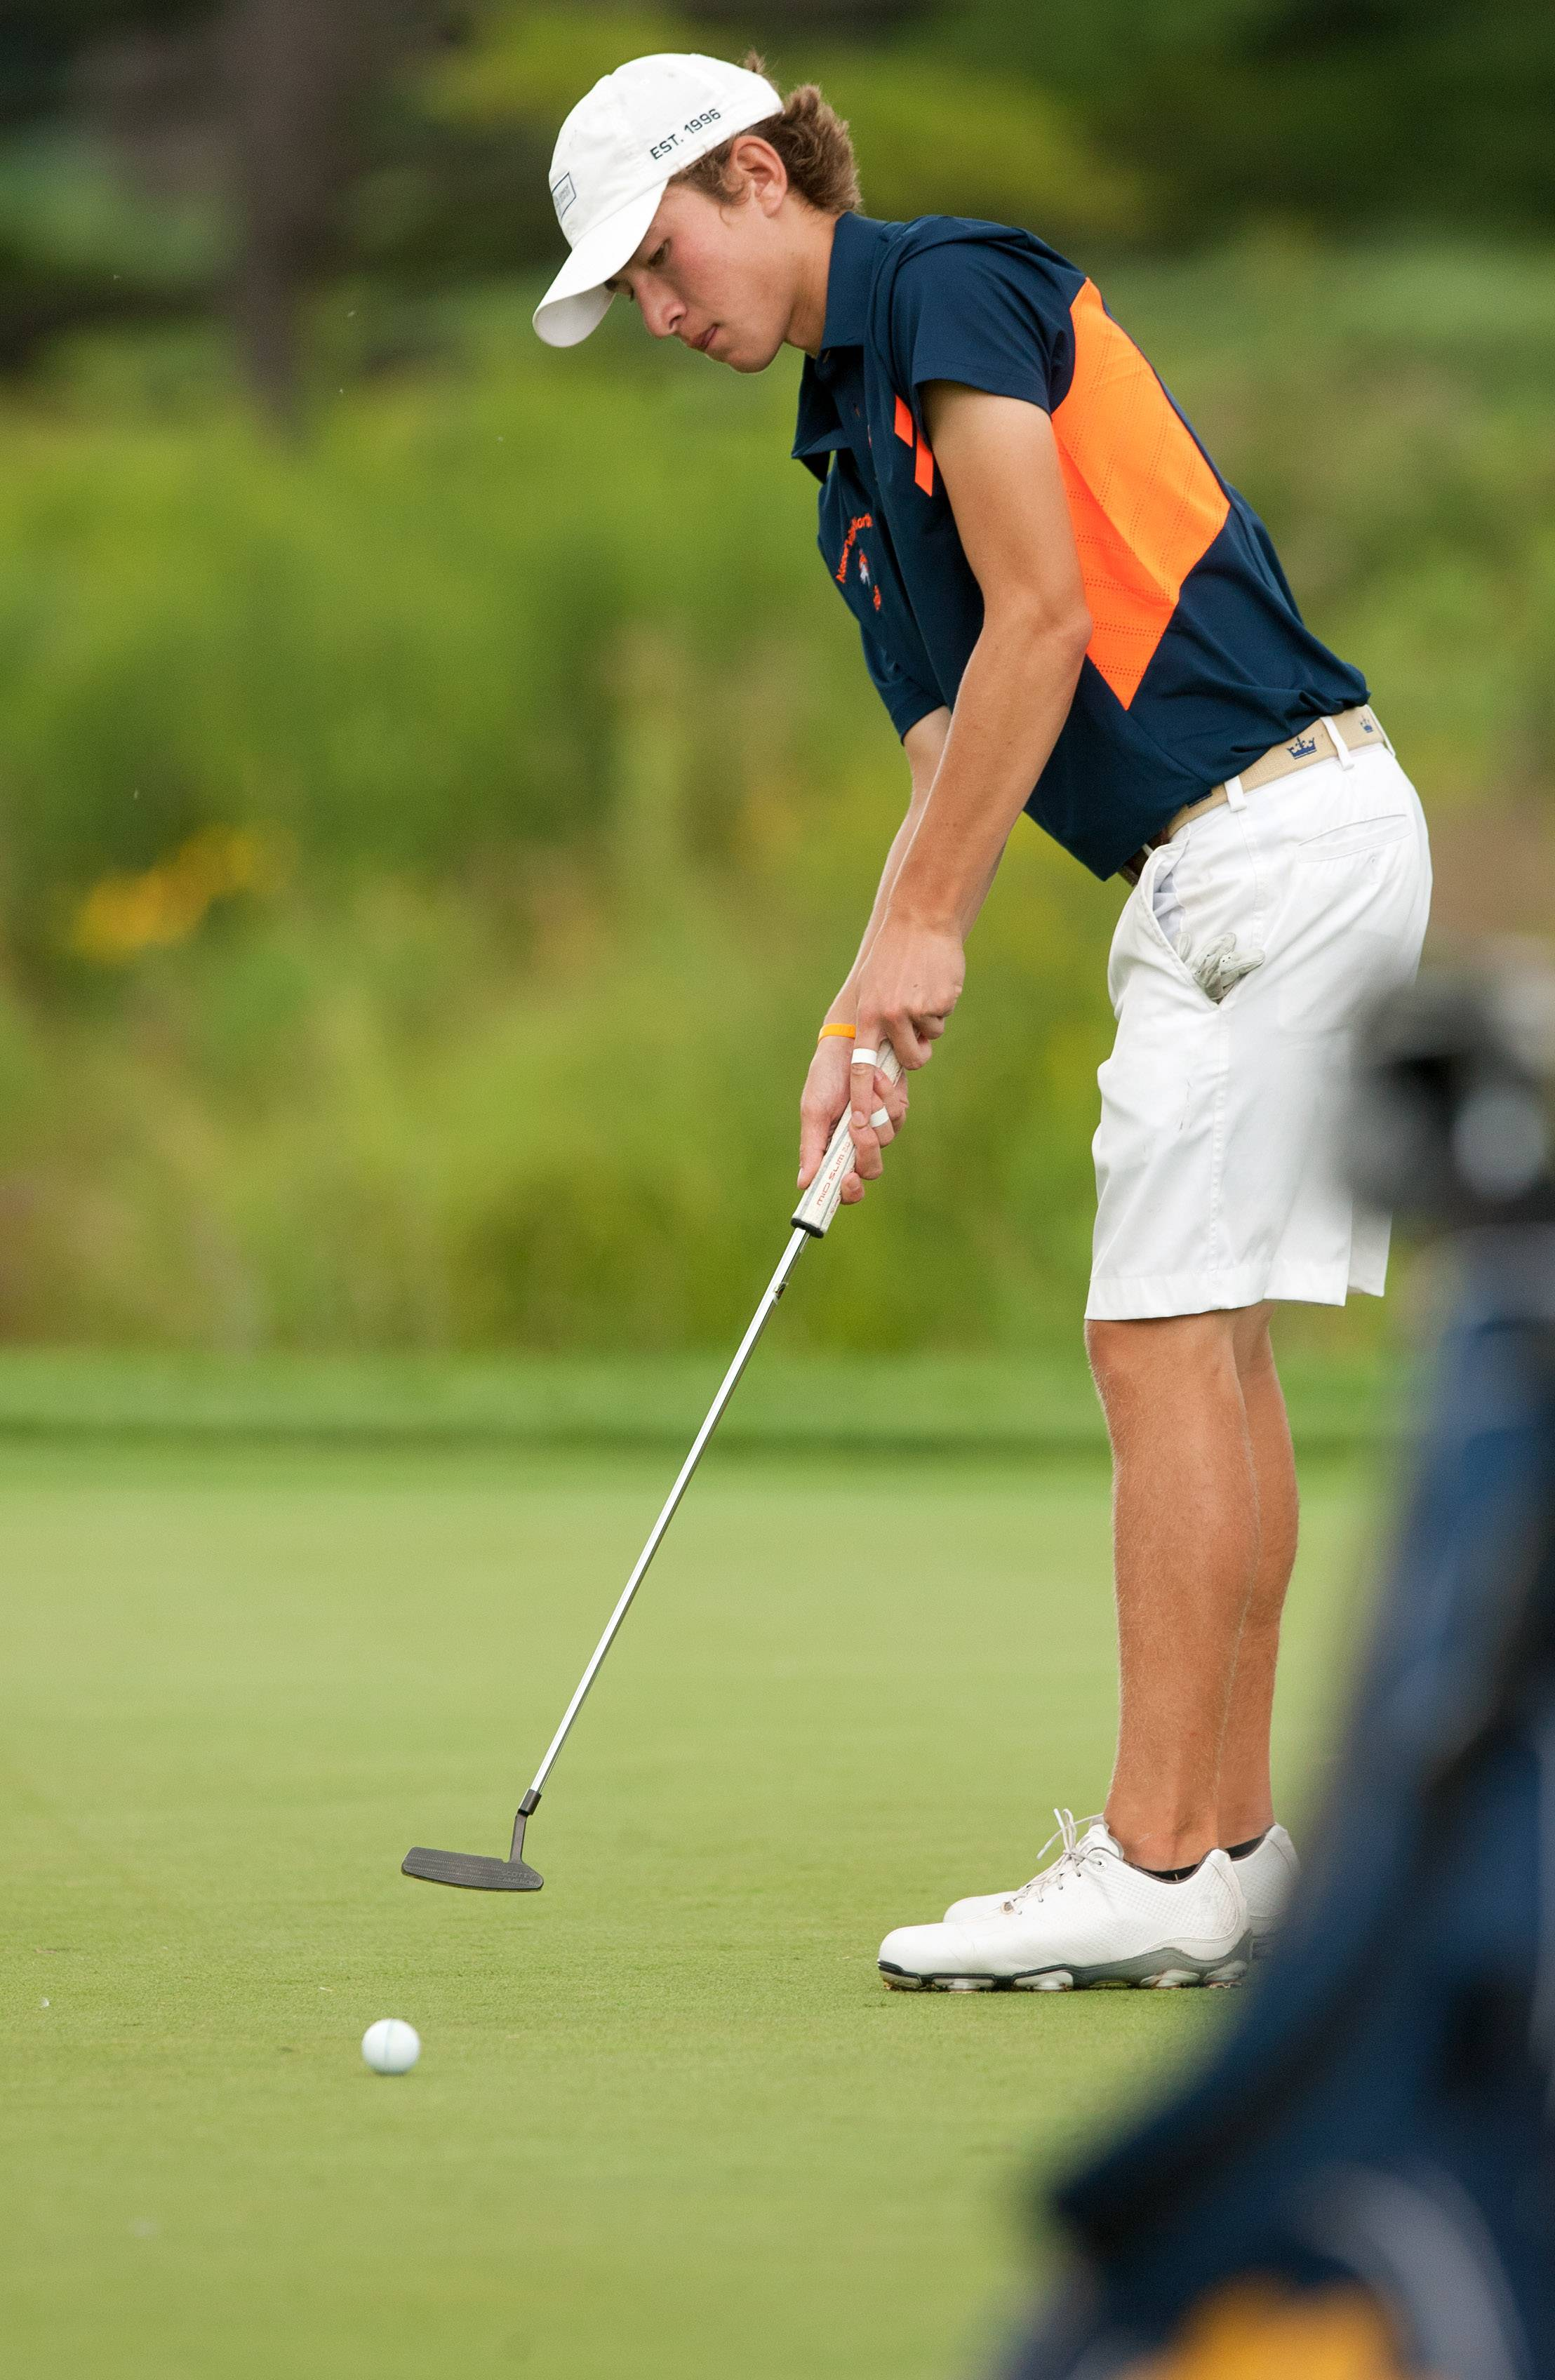 Naperville North's Griffin Brown putts during the Vern McGonagle Memorial High School Golf Championship at the Naperville Country Club.